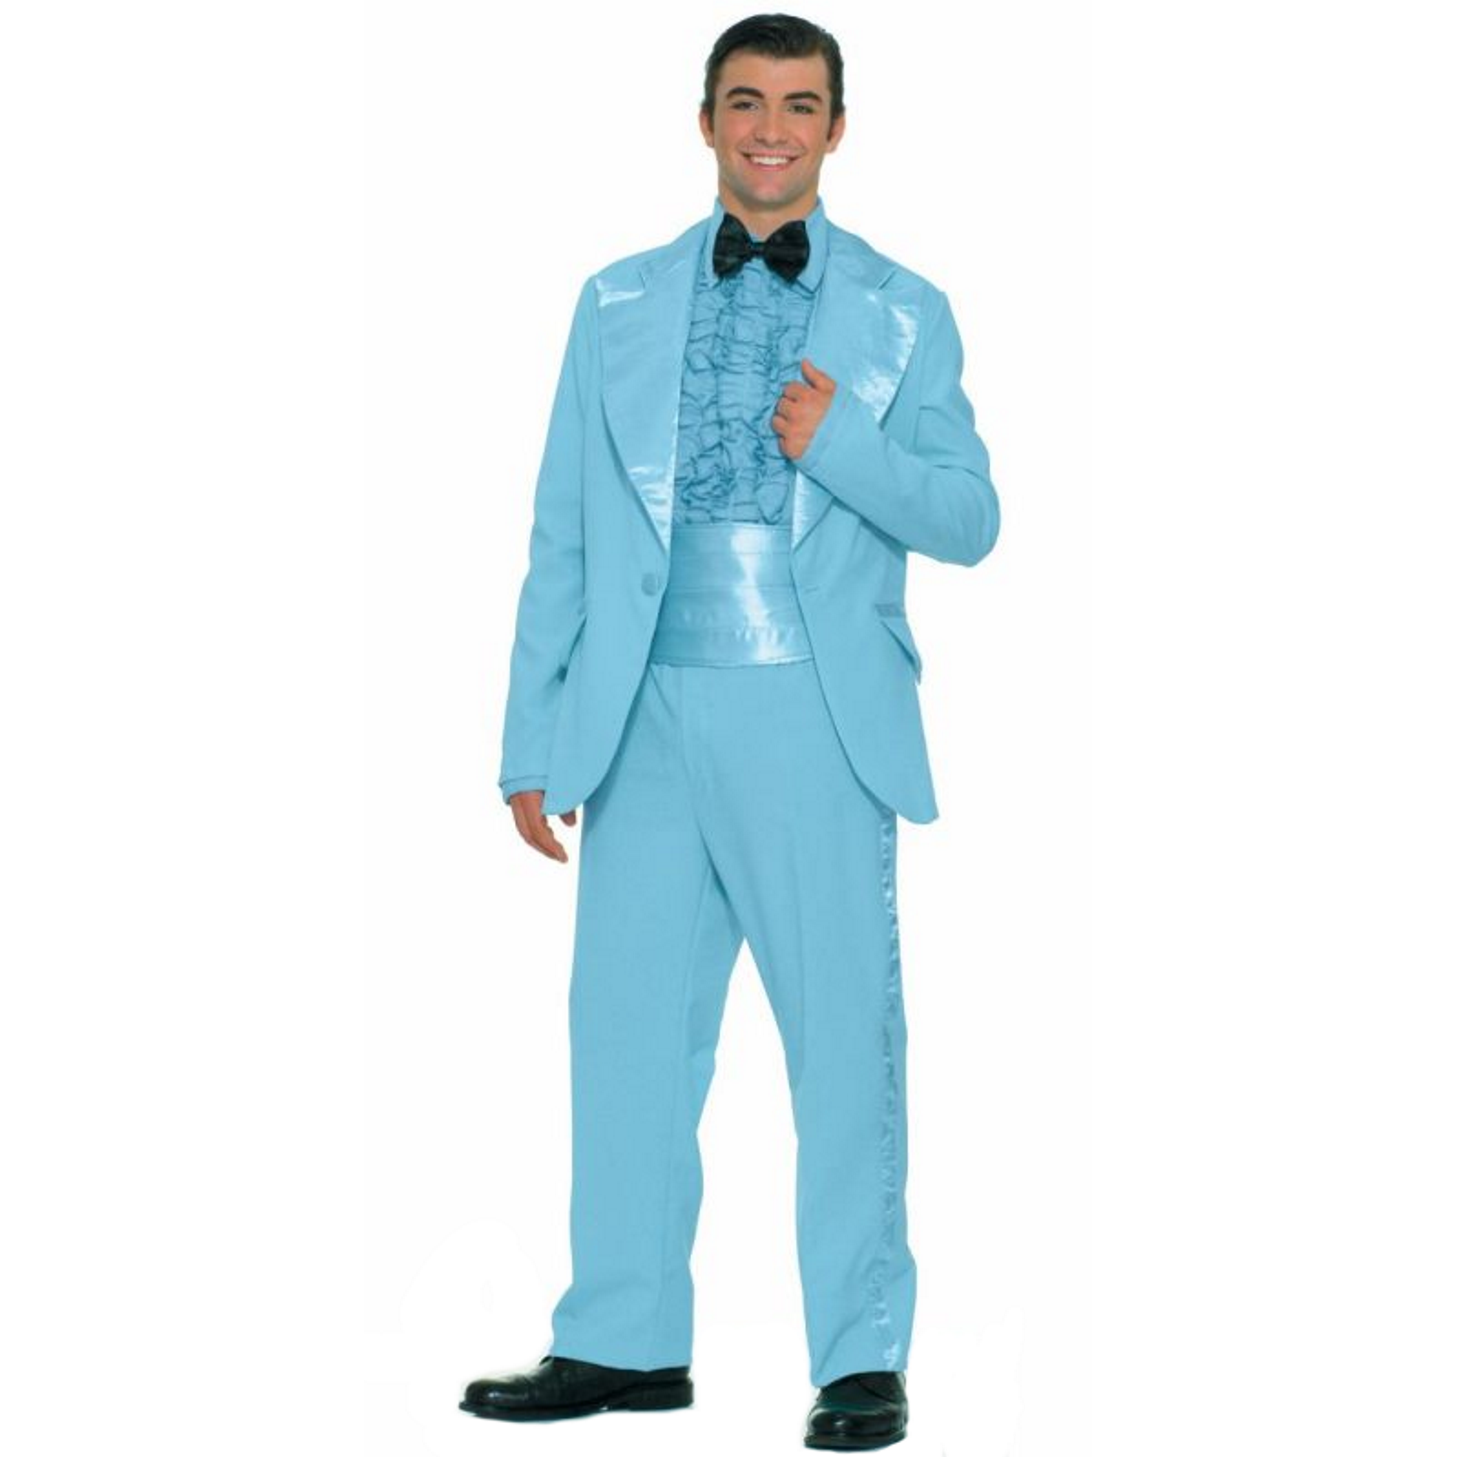 Enchanting Prom Suits For Boys Gallery - All Wedding Dresses ...